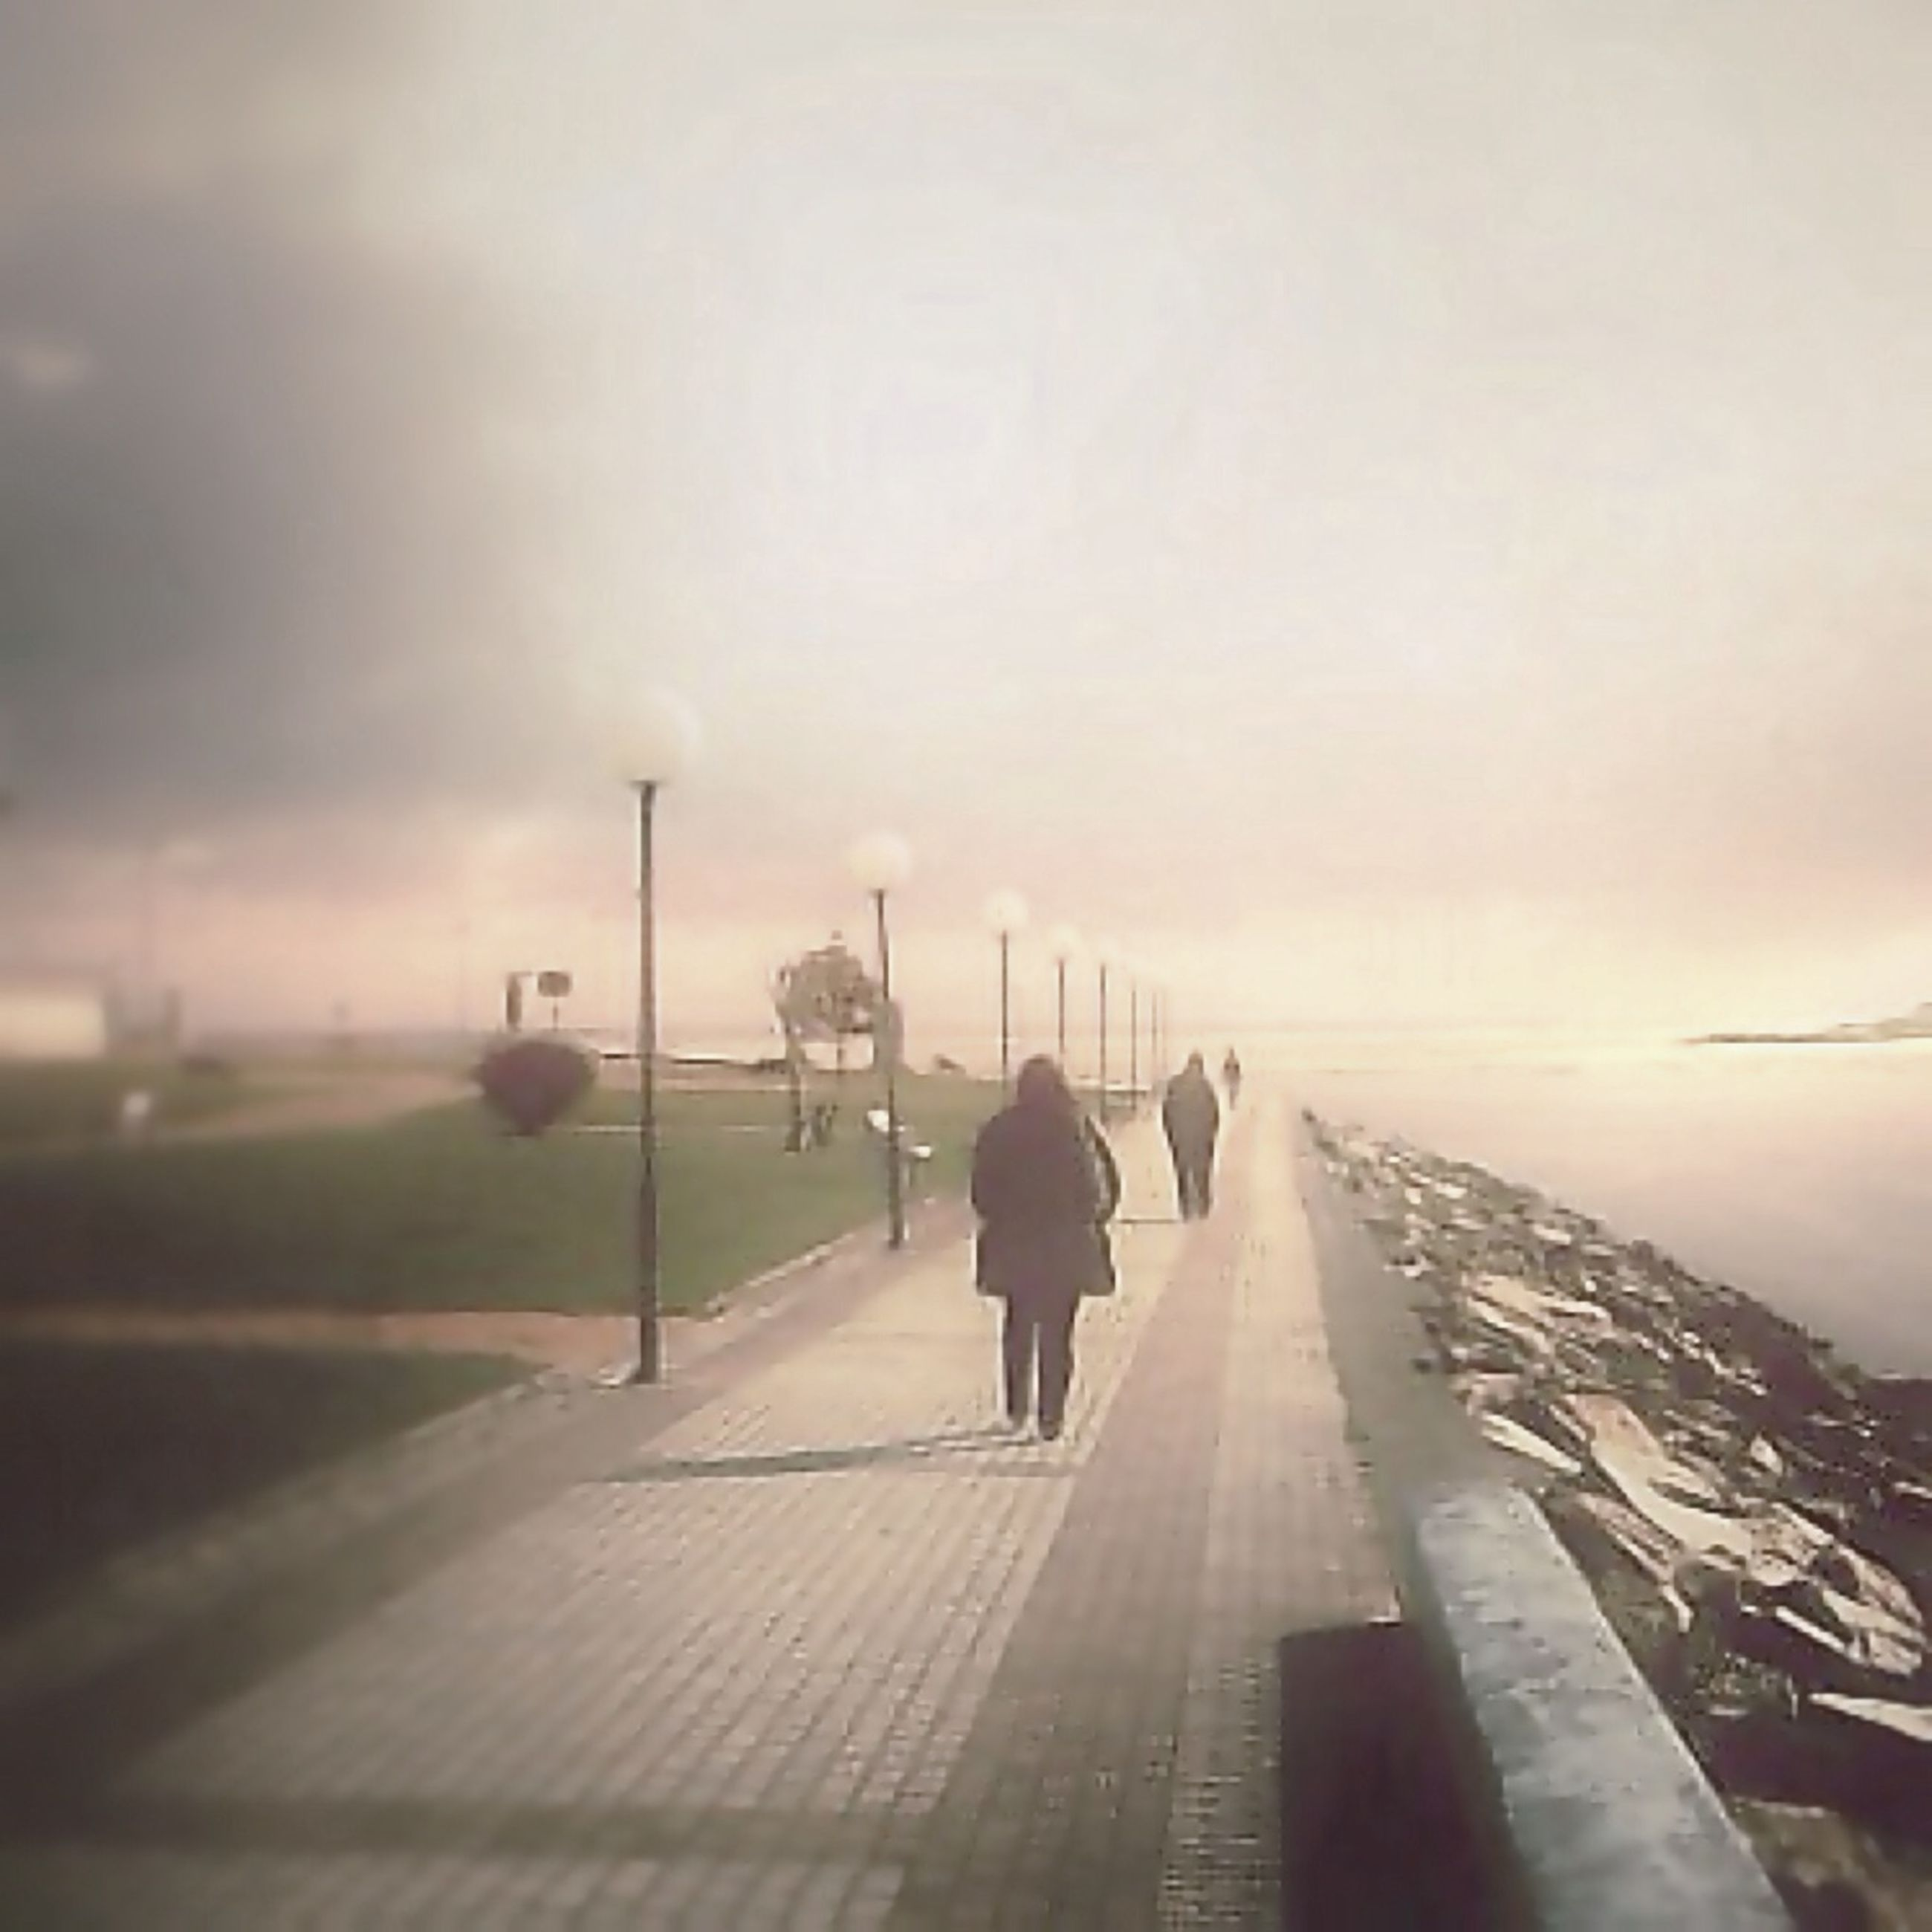 rear view, the way forward, sky, full length, lifestyles, walking, men, leisure activity, transportation, silhouette, diminishing perspective, road, standing, person, vanishing point, cloud - sky, street, weather